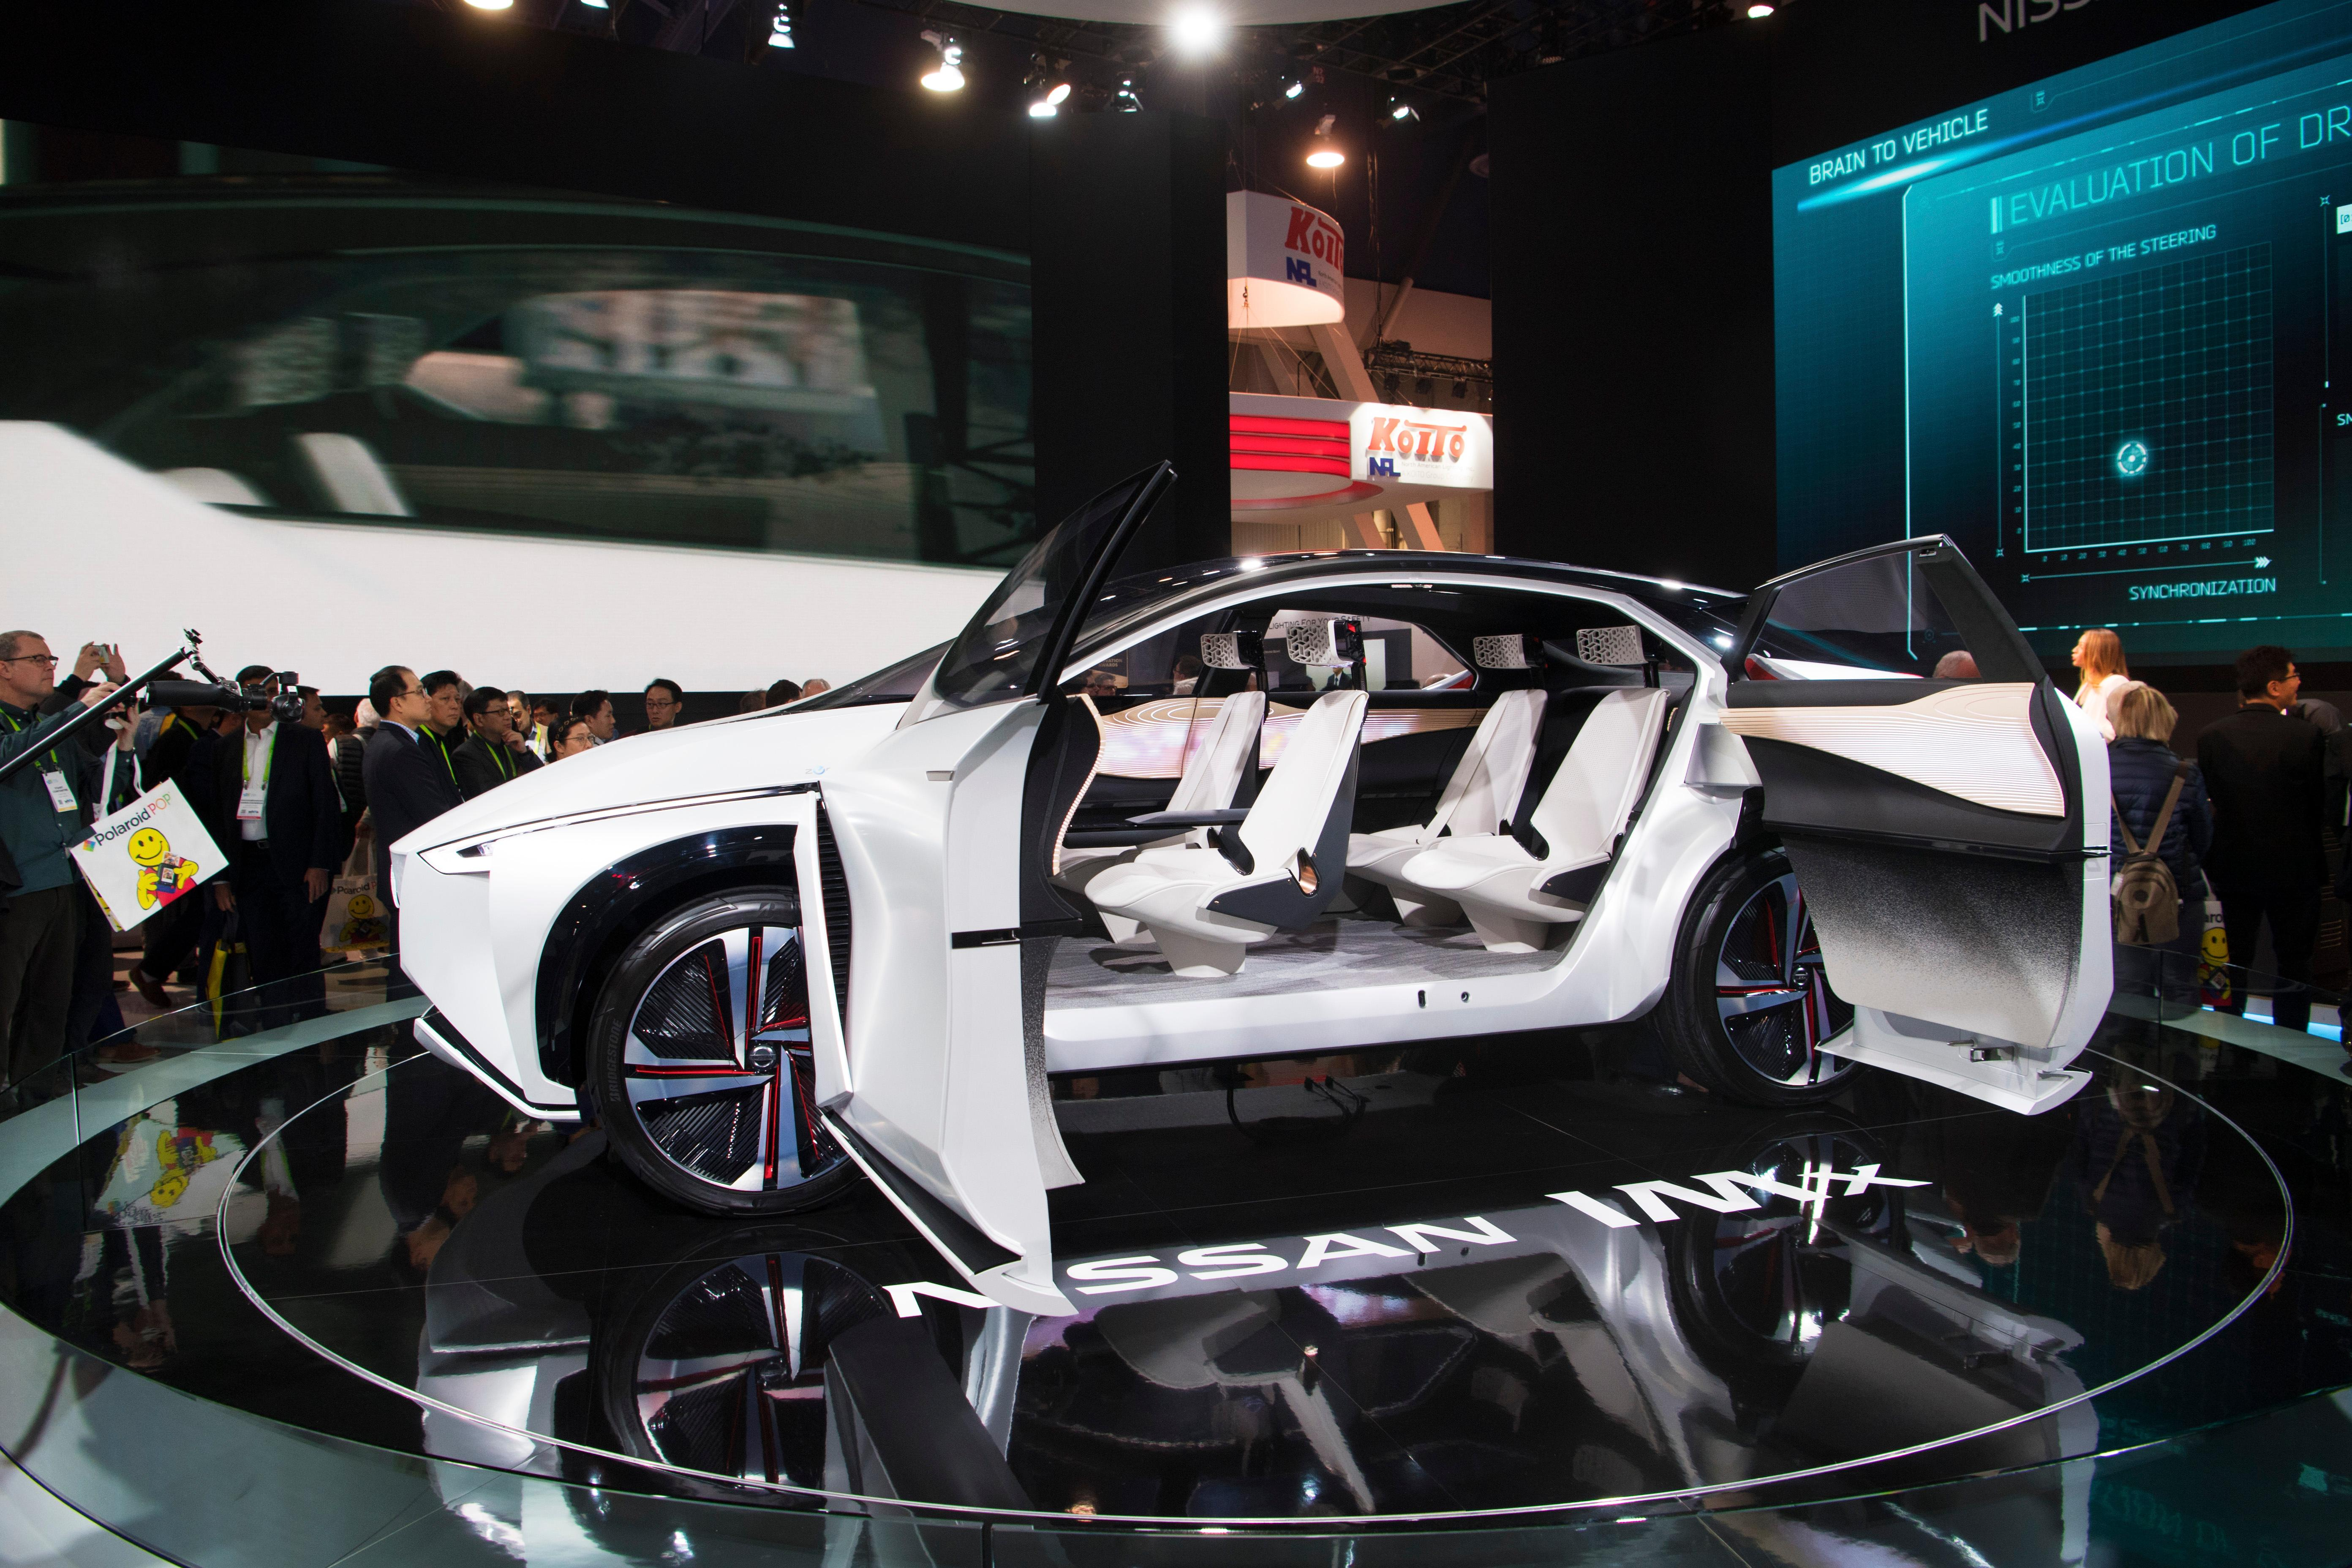 The electric, autonomous Nissan IMX concept car is seen during the second day of CES Wednesday, January 10, 2018, at the Las Vegas Convention Center. CREDIT: Sam Morris/Las Vegas News Bureau